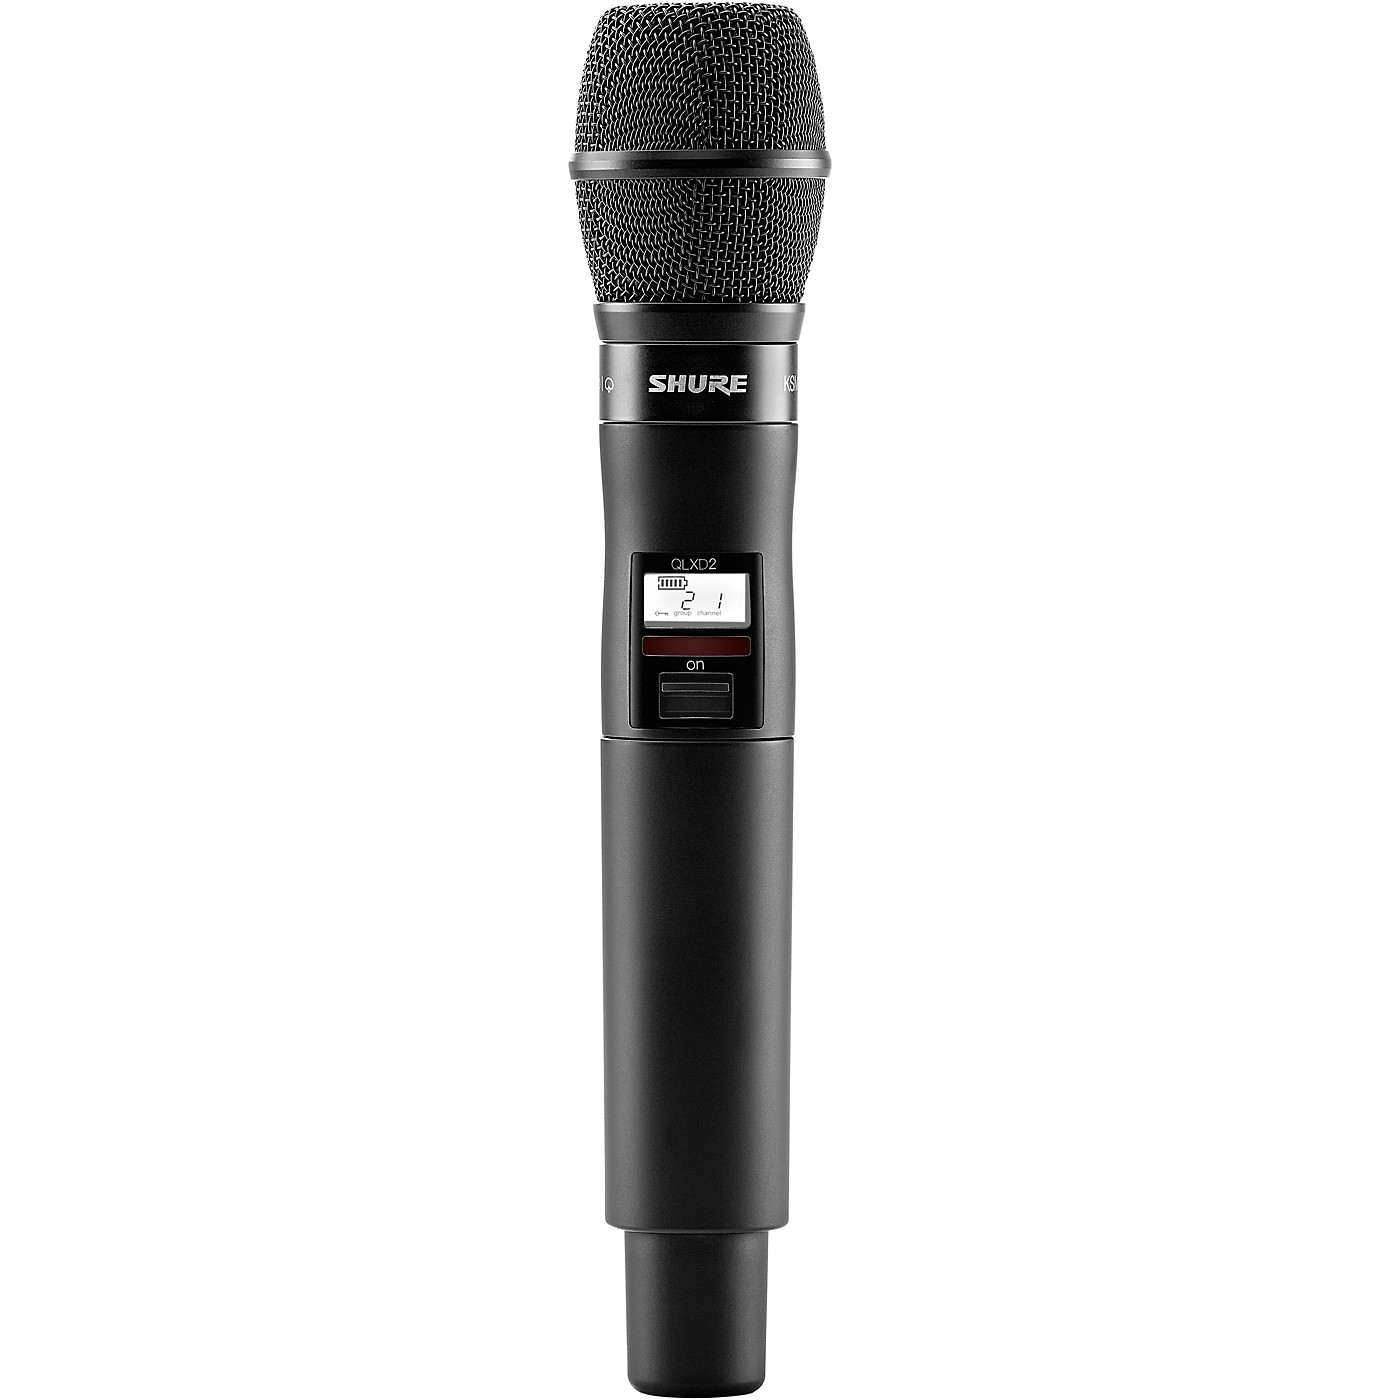 Shure QLXD2/KSM9HS Handheld Transmitter with KSM9HS Microphone thumbnail